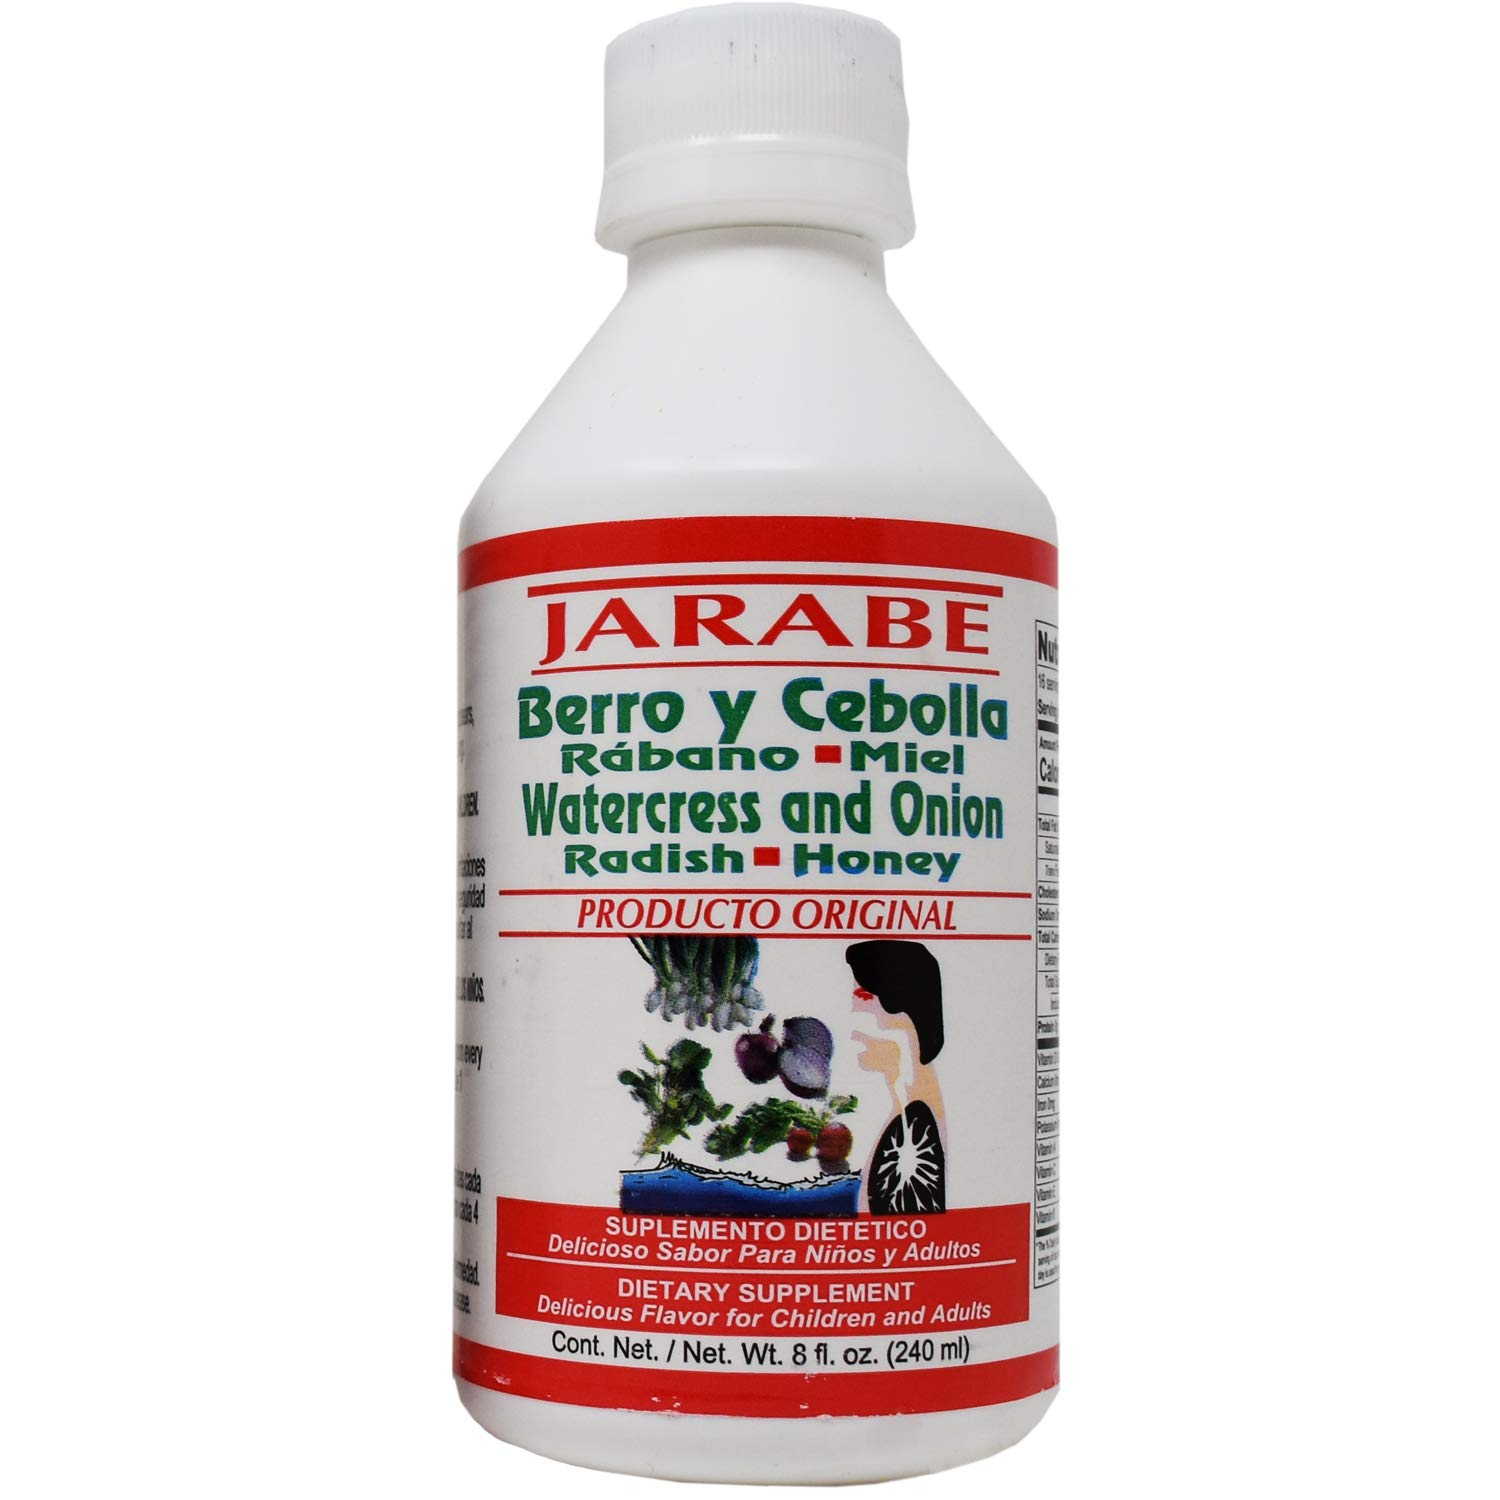 Amazon.com: Jarabe Berro y Cebolla Rabano-Miel 8 Oz. 2-PACK Watercress and Onion Radish-Honey Syrup (2): Health & Personal Care